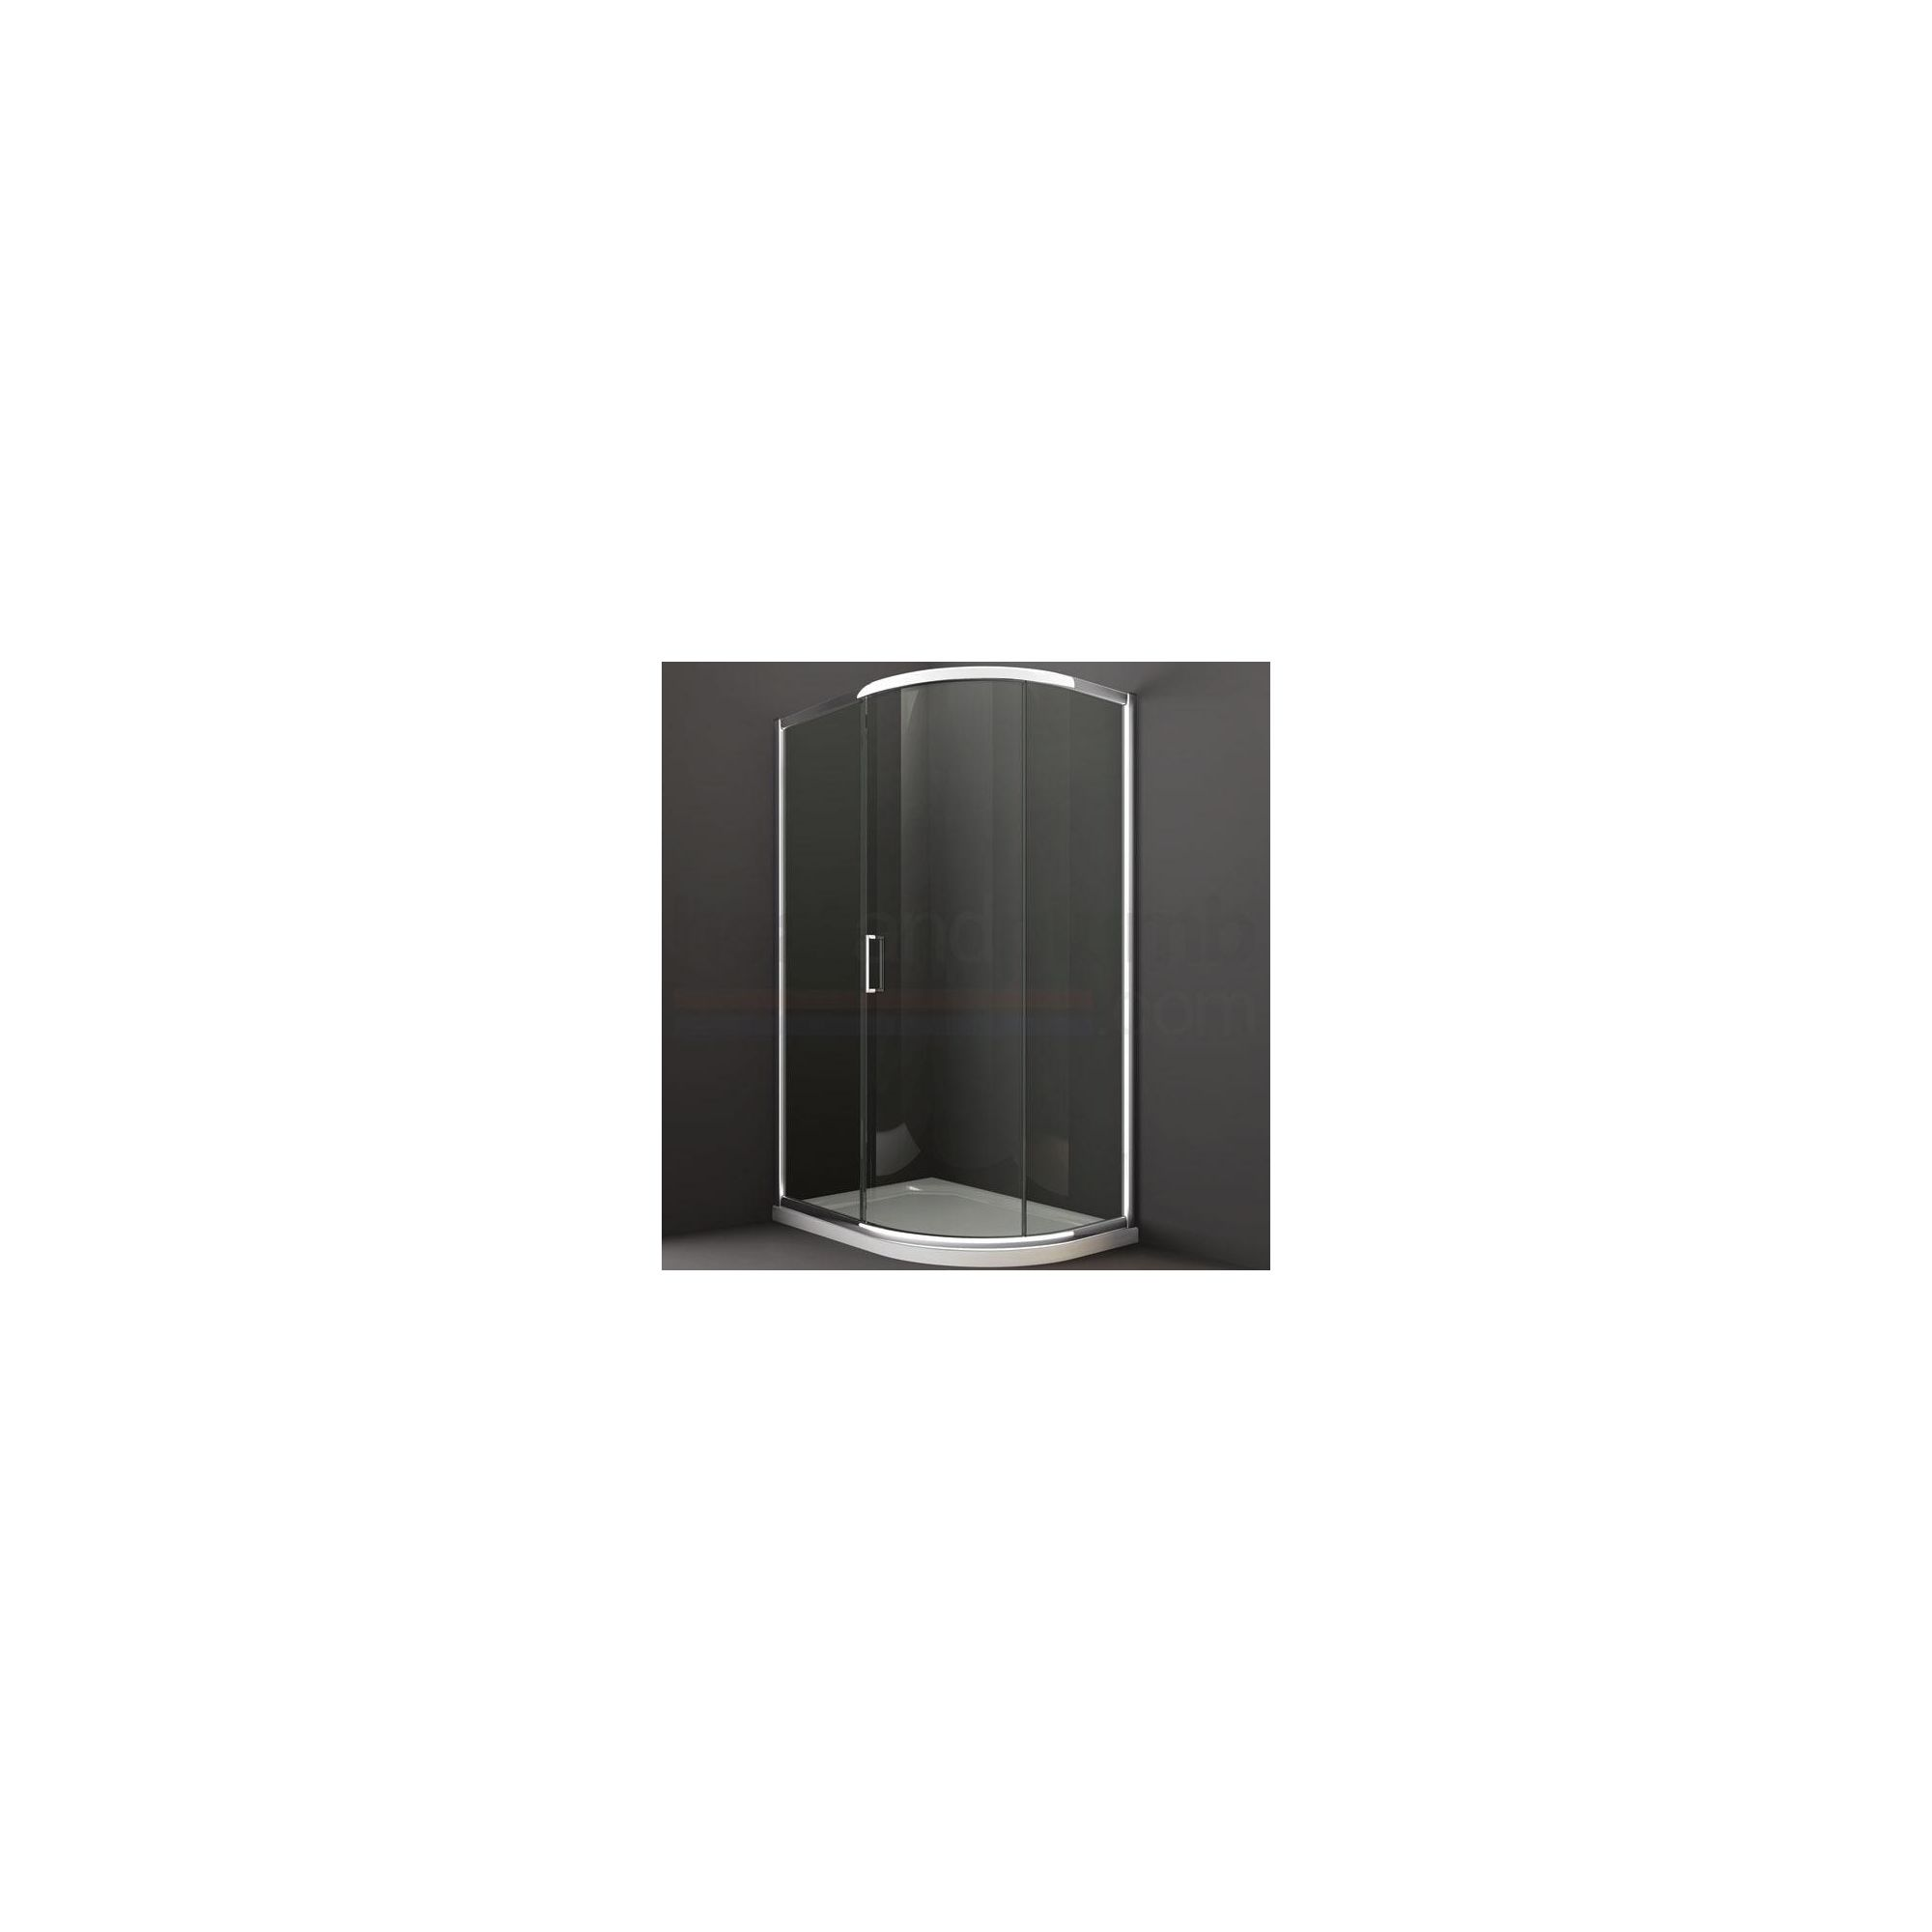 Merlyn Series 8 Sliding 1 Door Offset Quadrant Shower Enclosure, 900mm x 760mm, Low Profile Tray, 8mm Glass at Tescos Direct